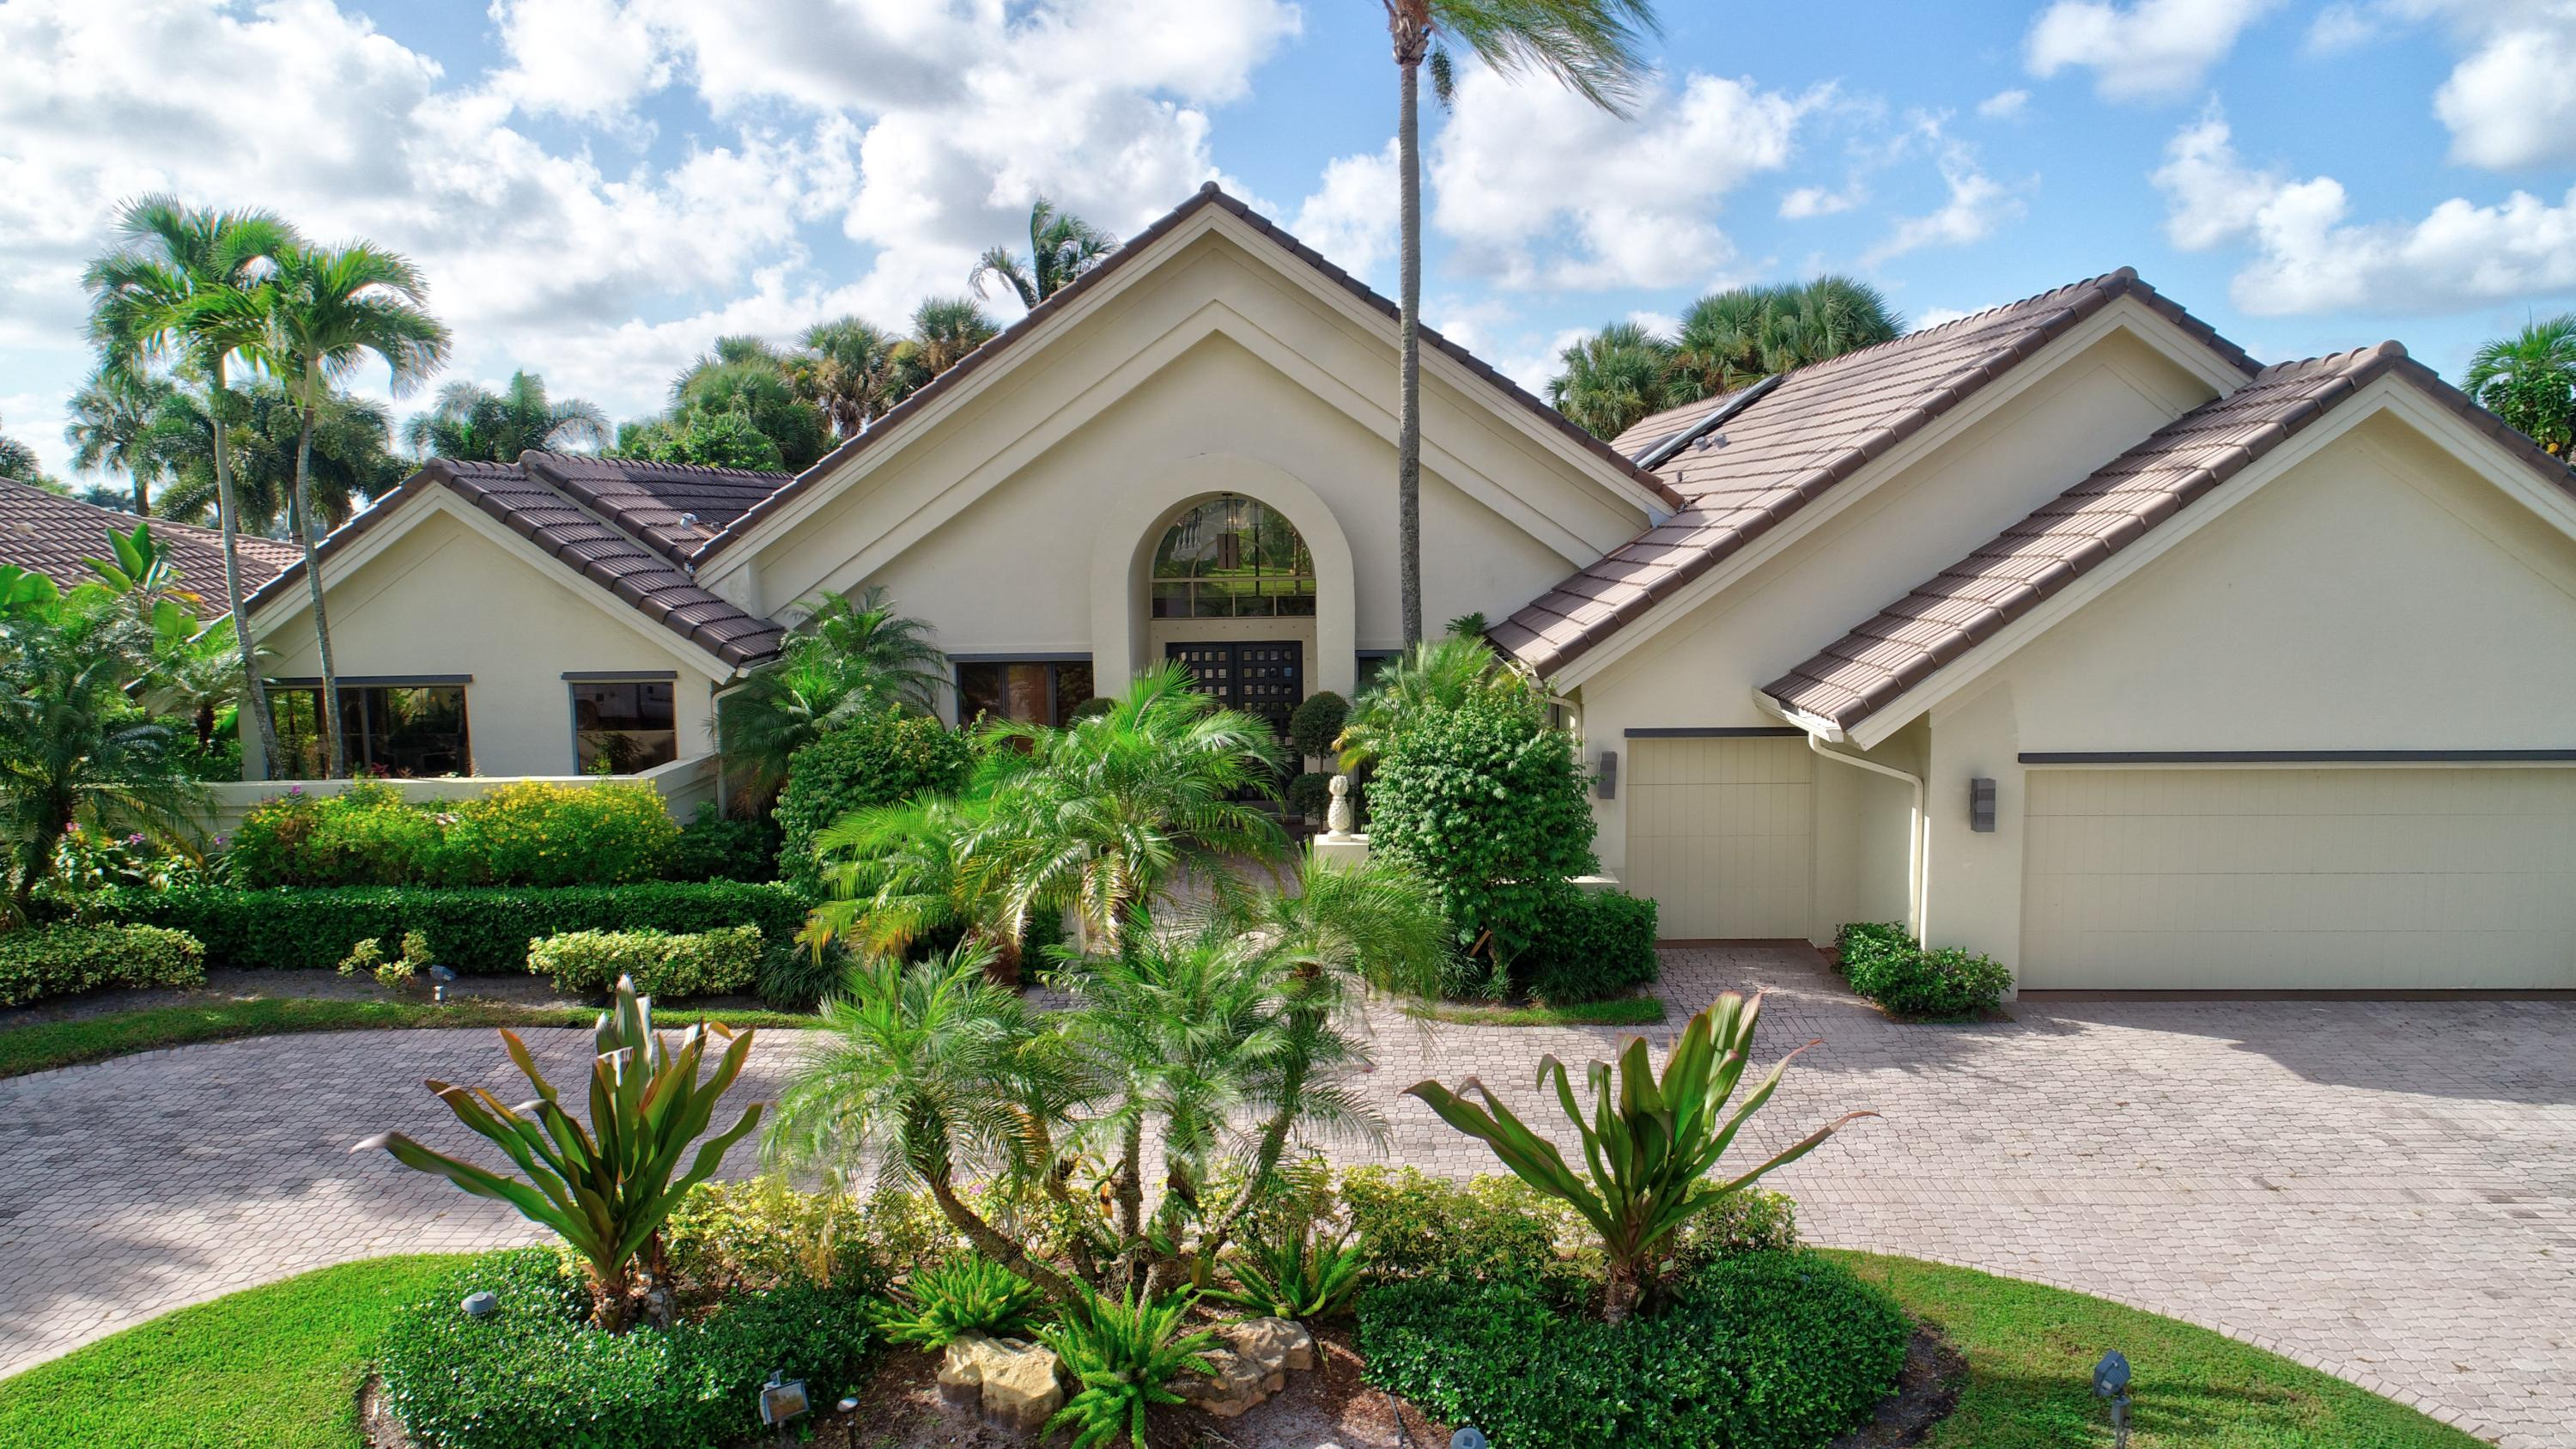 Boca Raton: St. Andrews - listed at 1,095,000 (17121 Northway Cir)